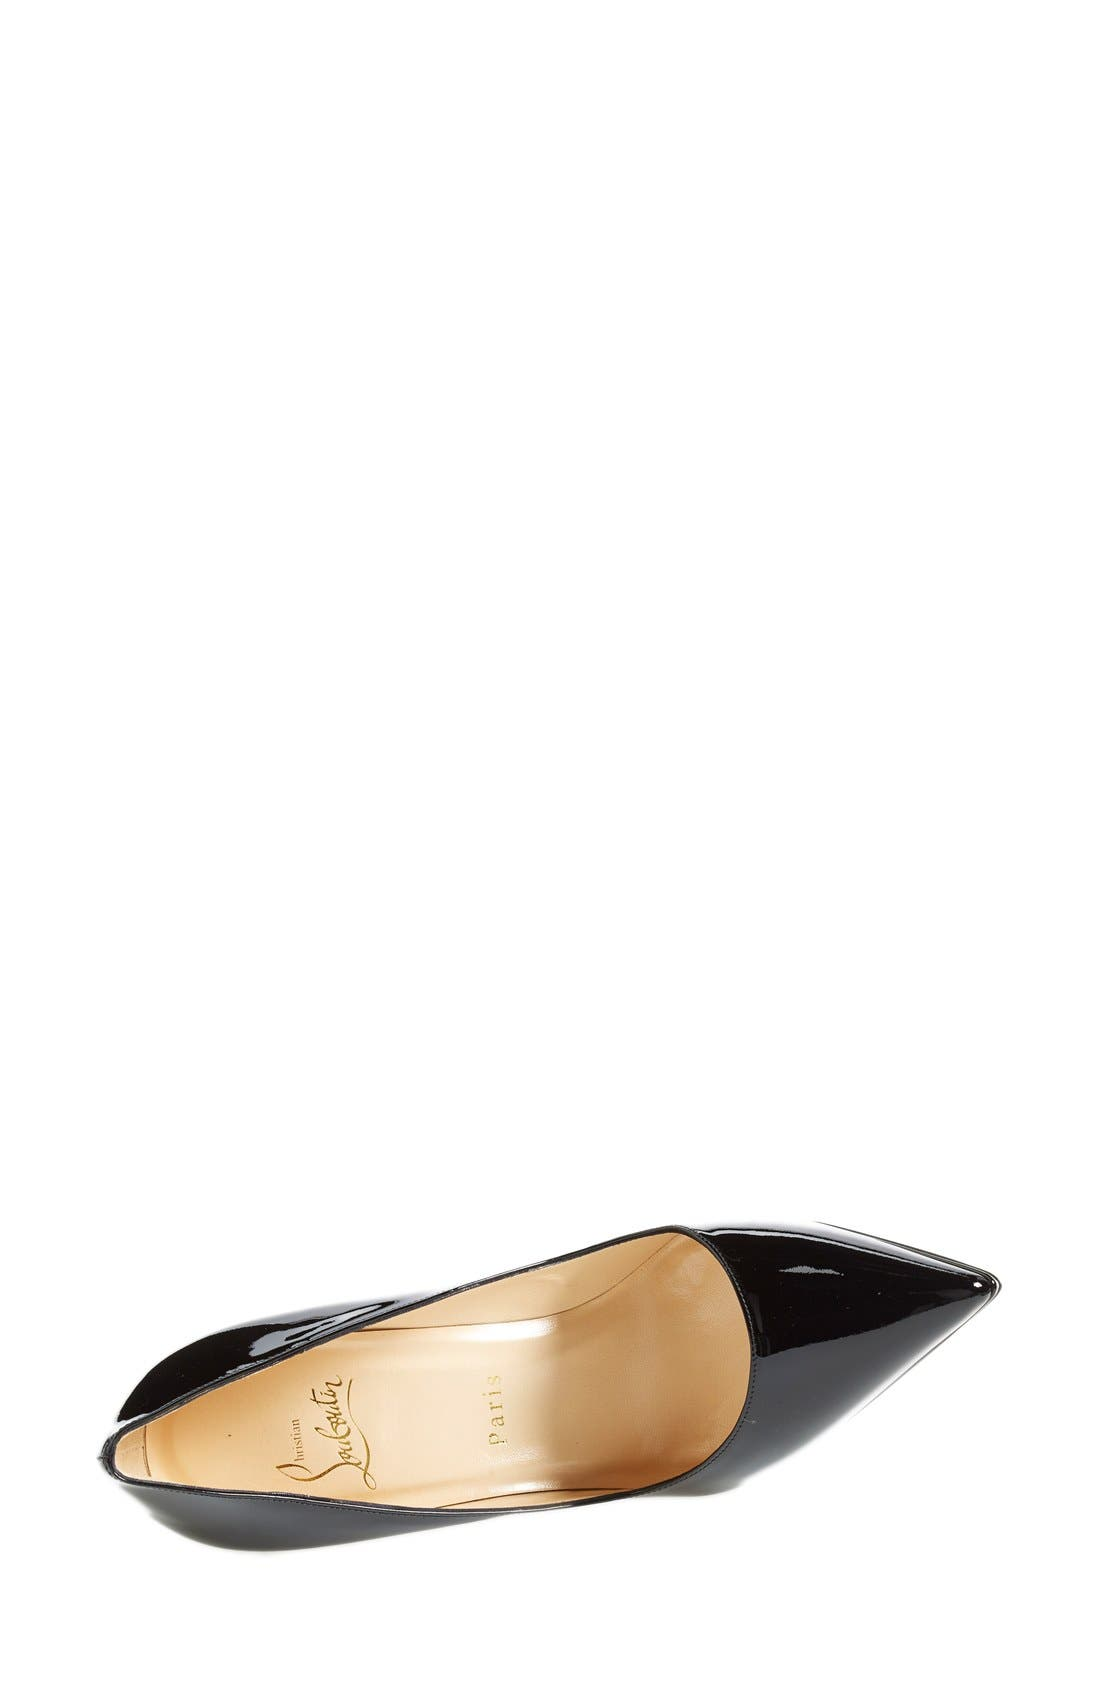 'Pigalle Plato' Pointy Toe Pump,                             Alternate thumbnail 2, color,                             001